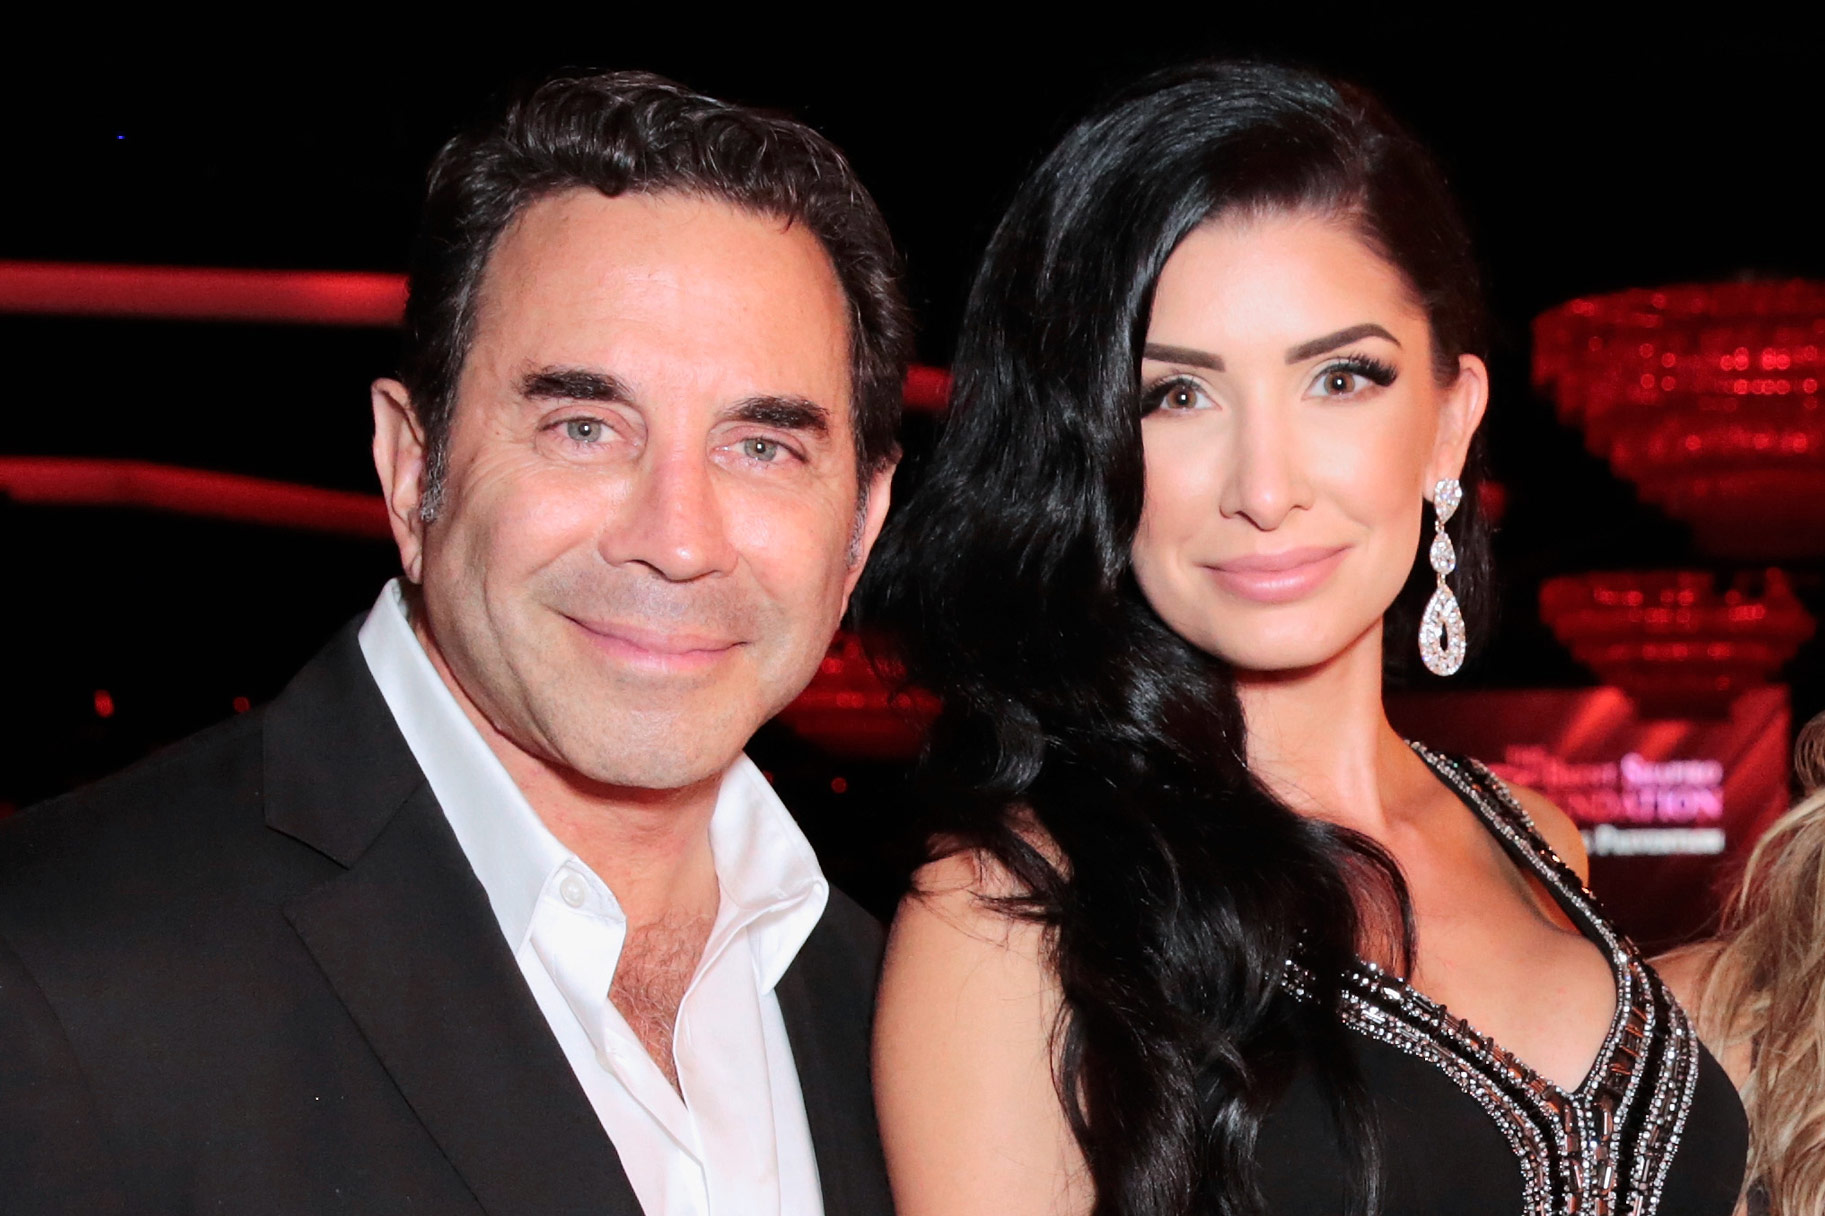 Brittany and Paul Nassif